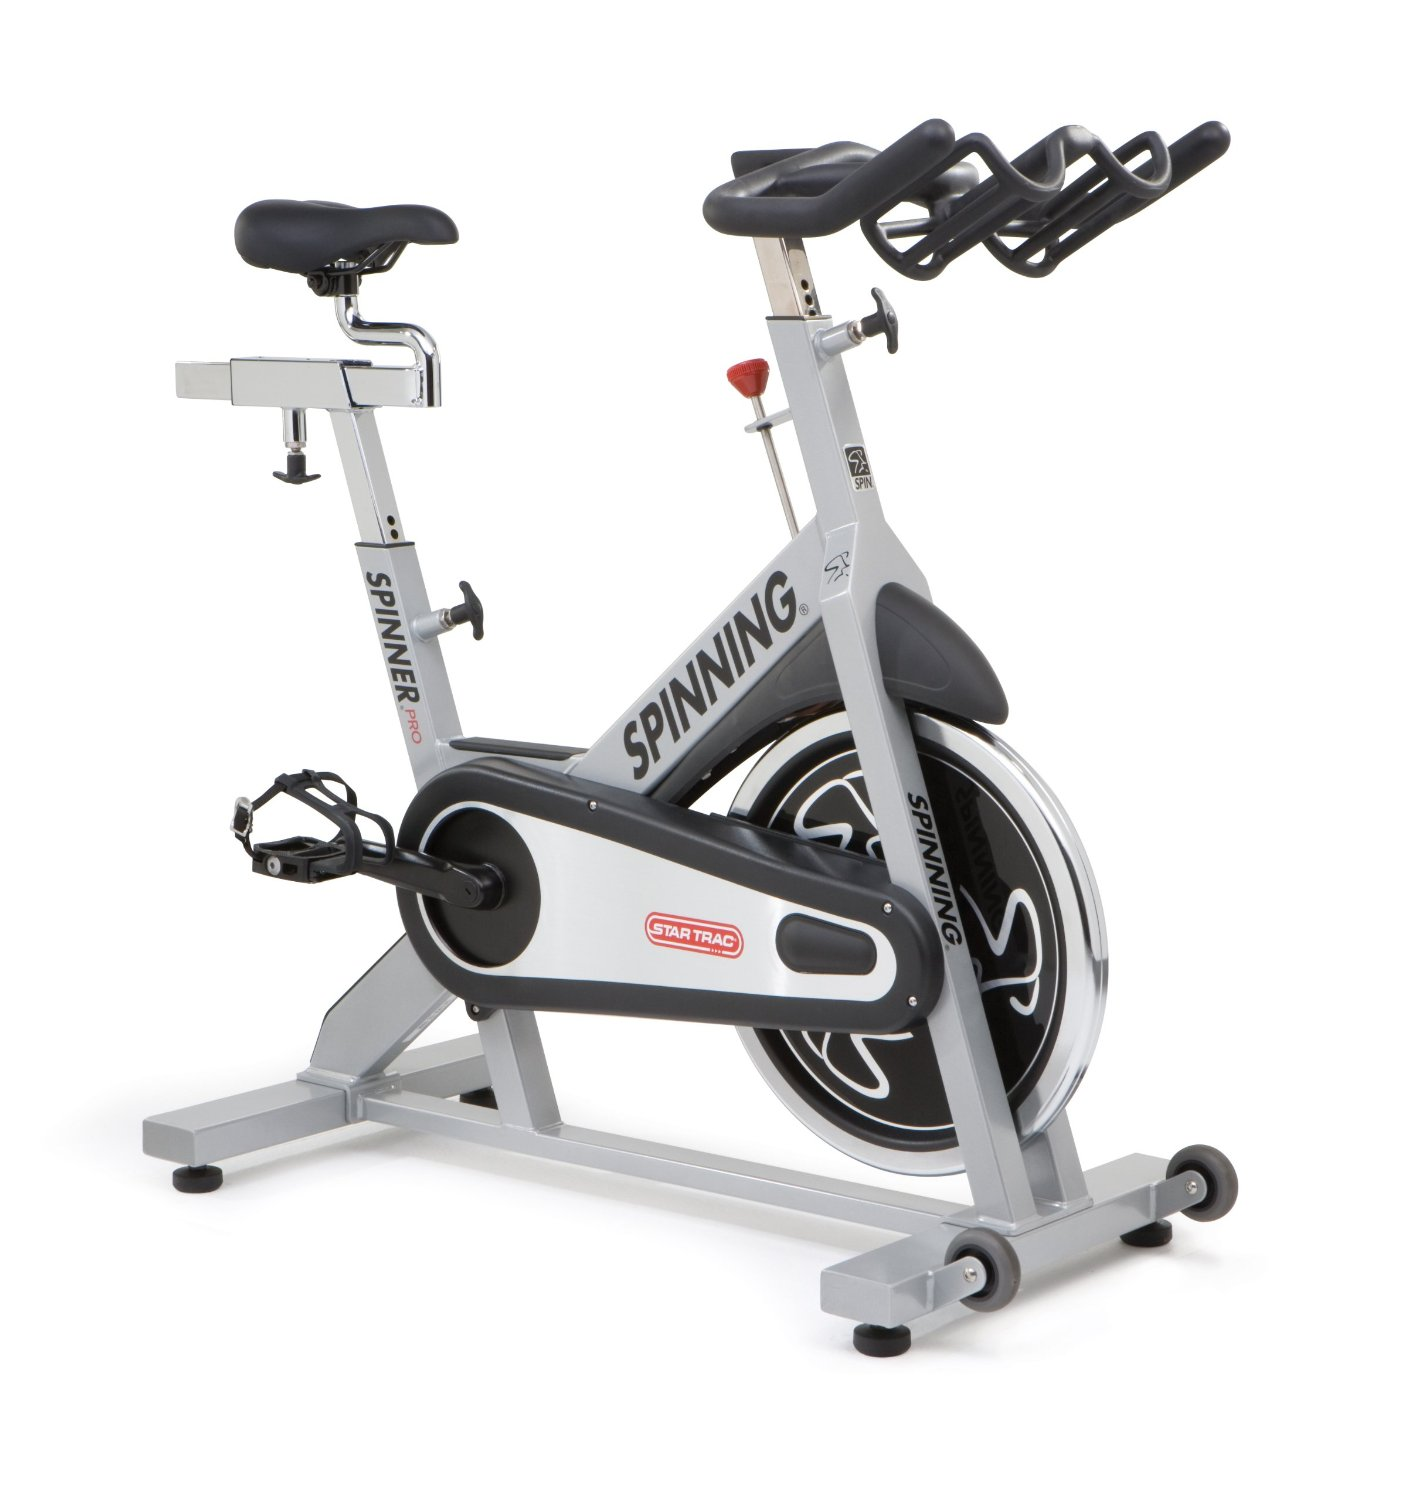 Star Trac Spinner 174 Pro Indoor Cycling Magazin